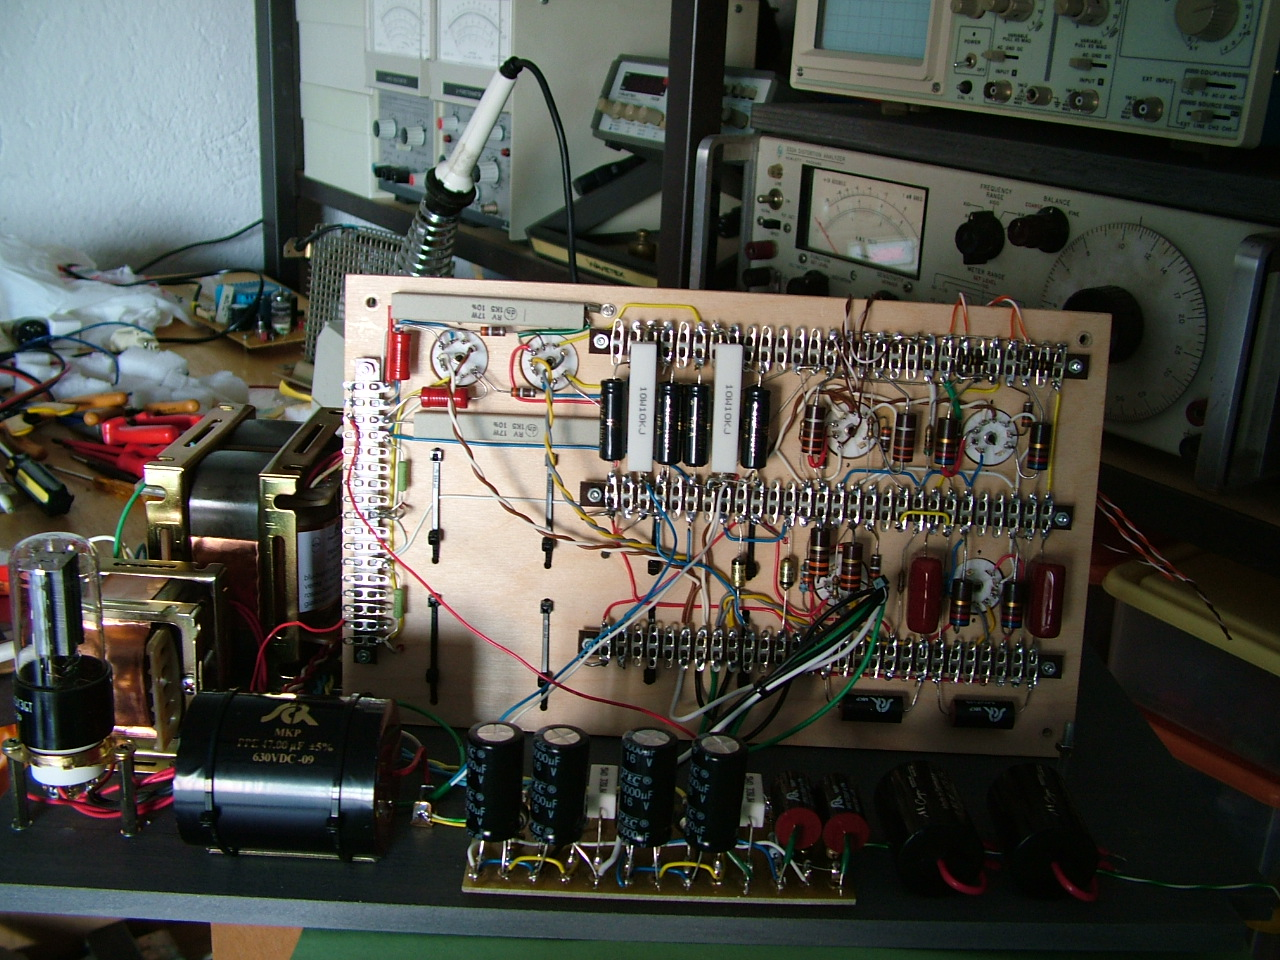 Nekolab Thoughts And Ideas For Diy Audio Enthusiasts The Configuration Is Classic Tube Power Supply 5y3 Rectifier All Capacitors Are Mkp Or Paper In Oil Carbon Composite Resistors Signal Path Double C Core Transformer Choke Psu